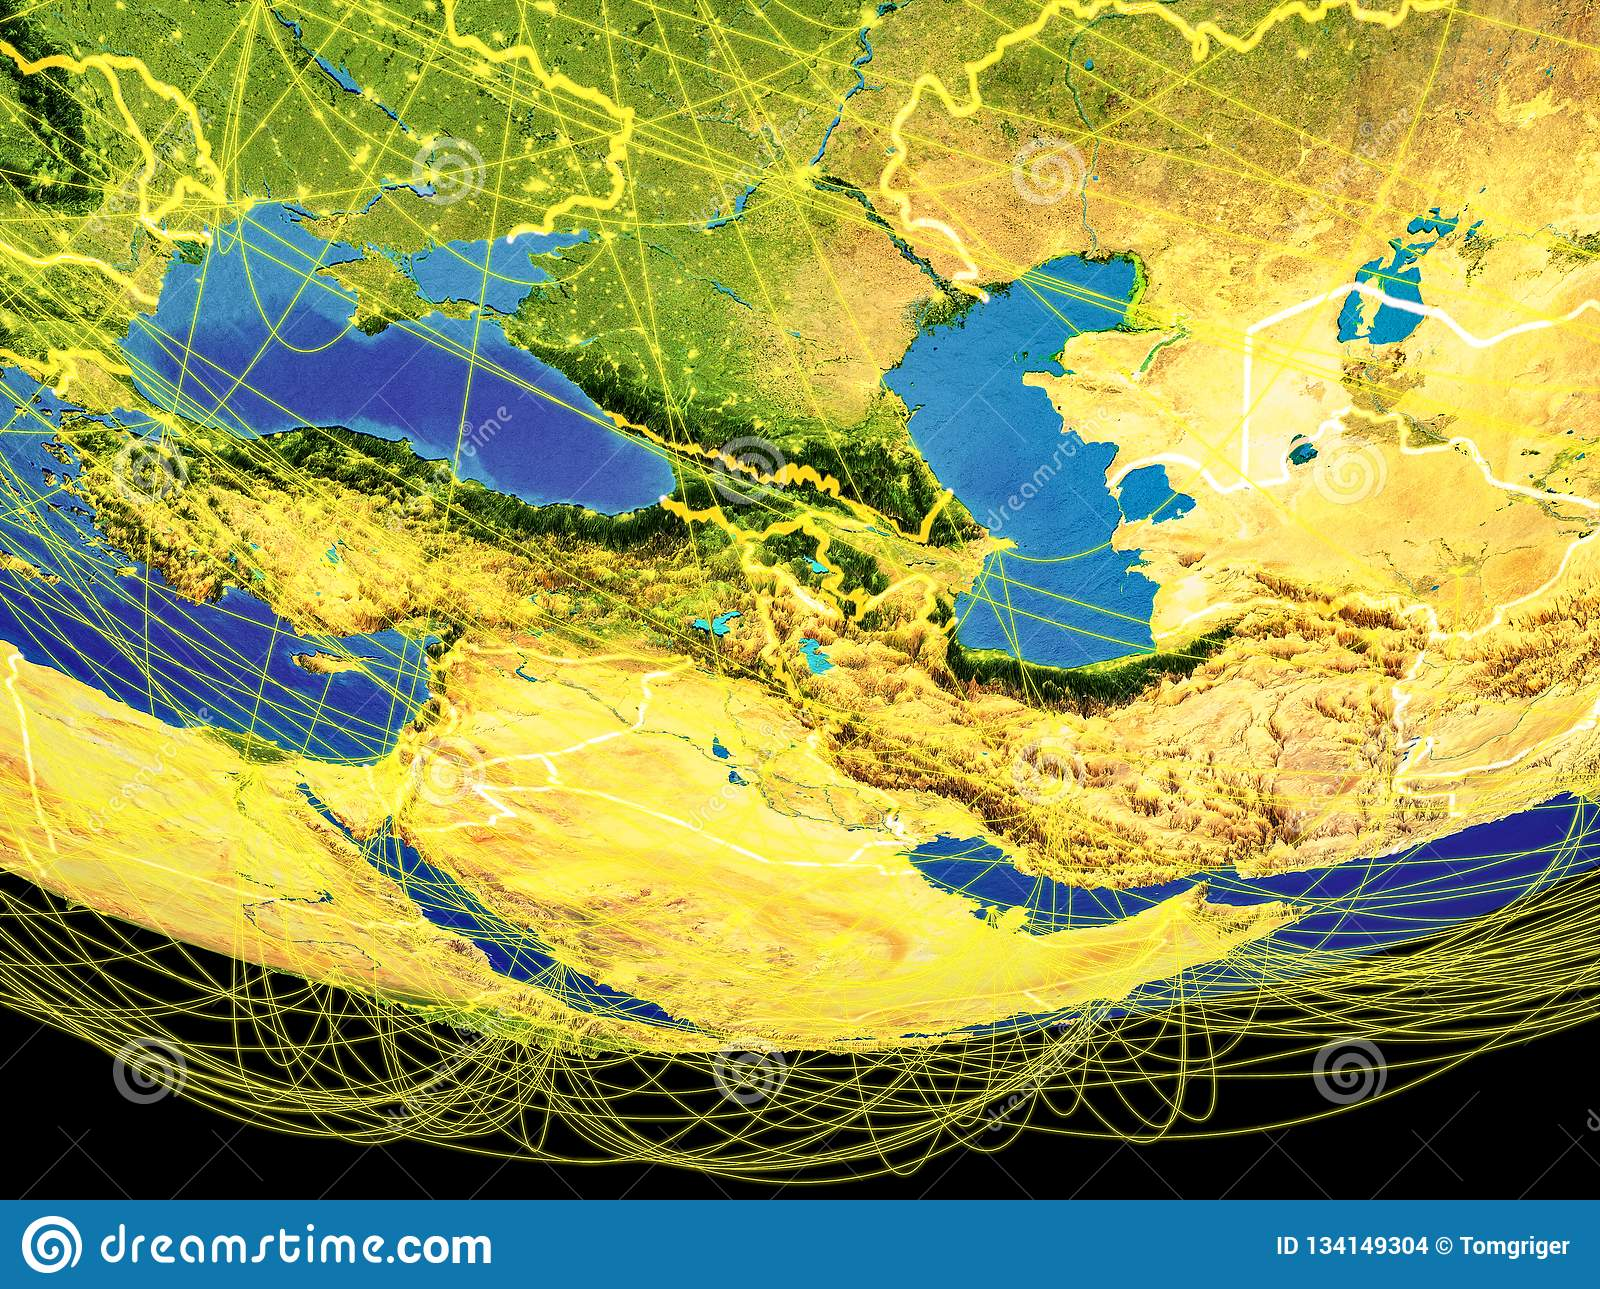 Caucasus Region From Space On Earth Stock Illustration